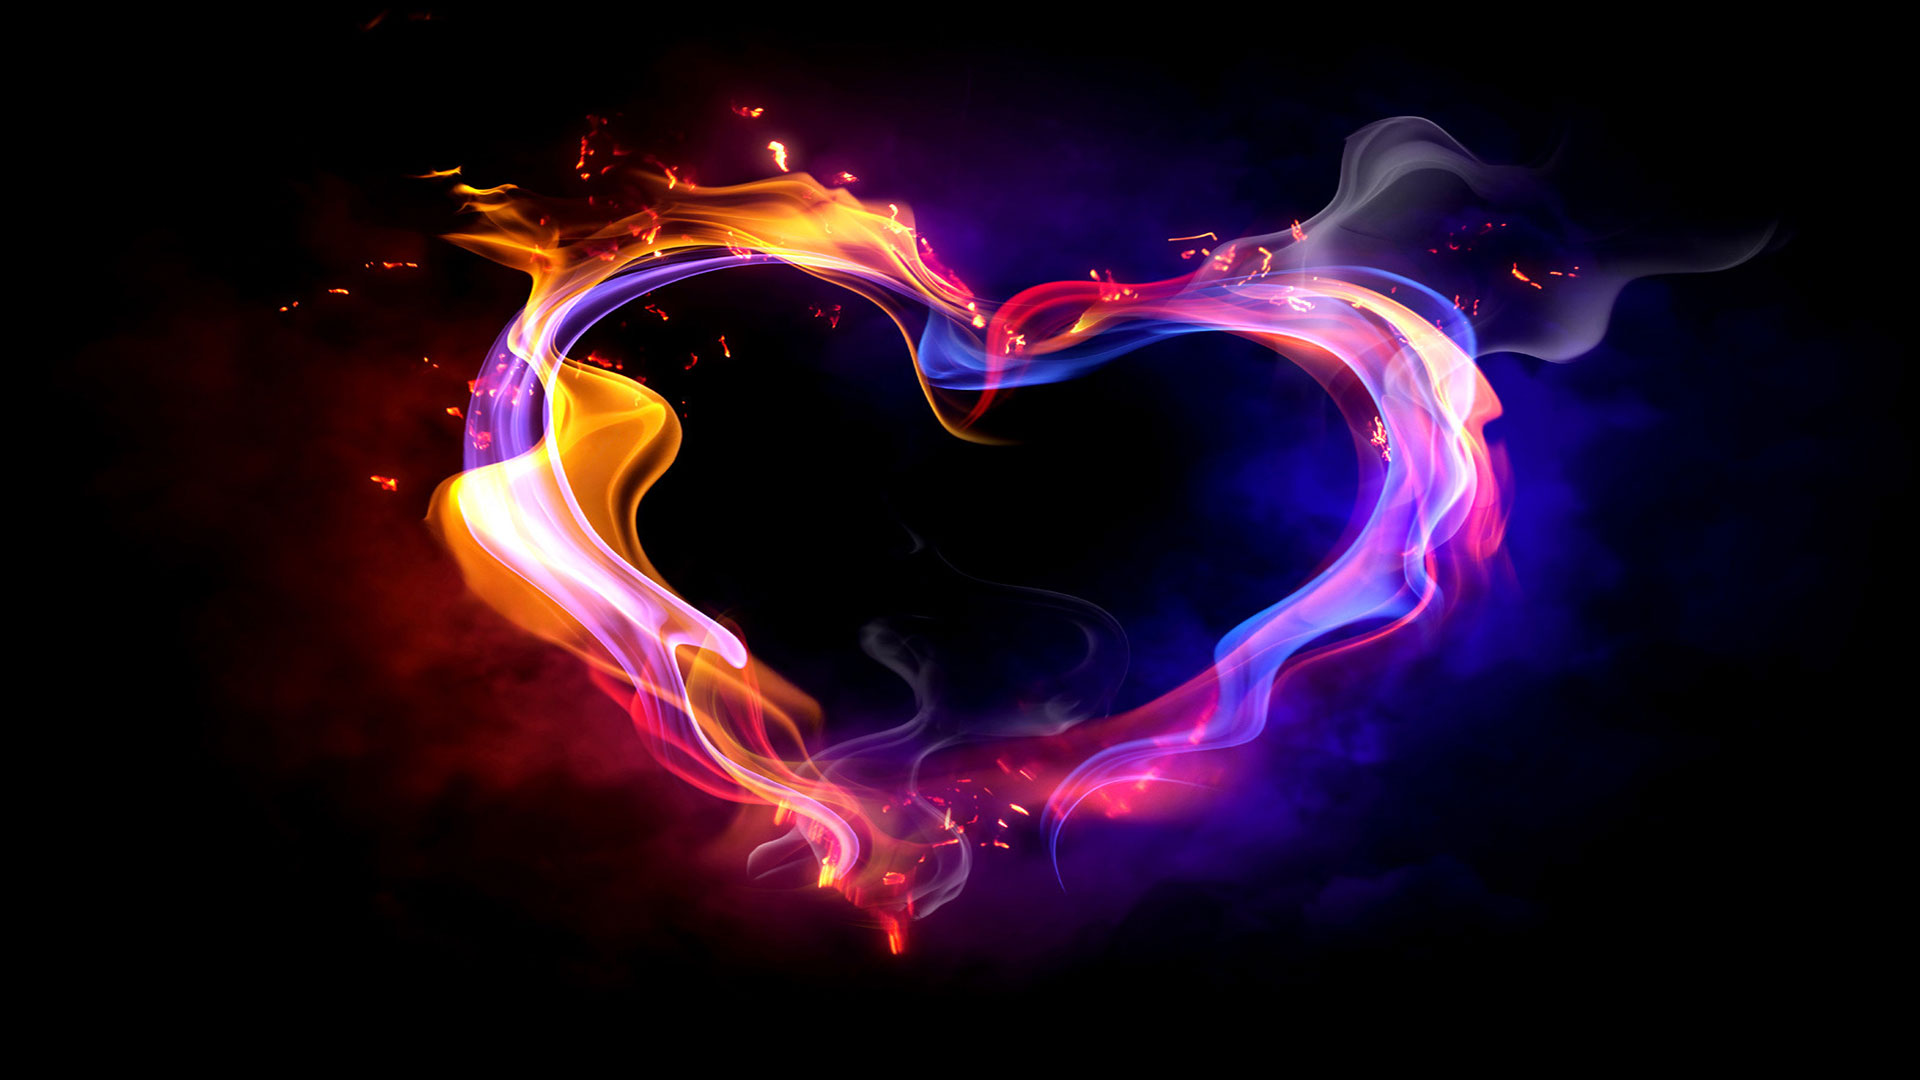 colorful smoke heart 20818 hd widescreen wallpapers Download Colorful 1920x1080